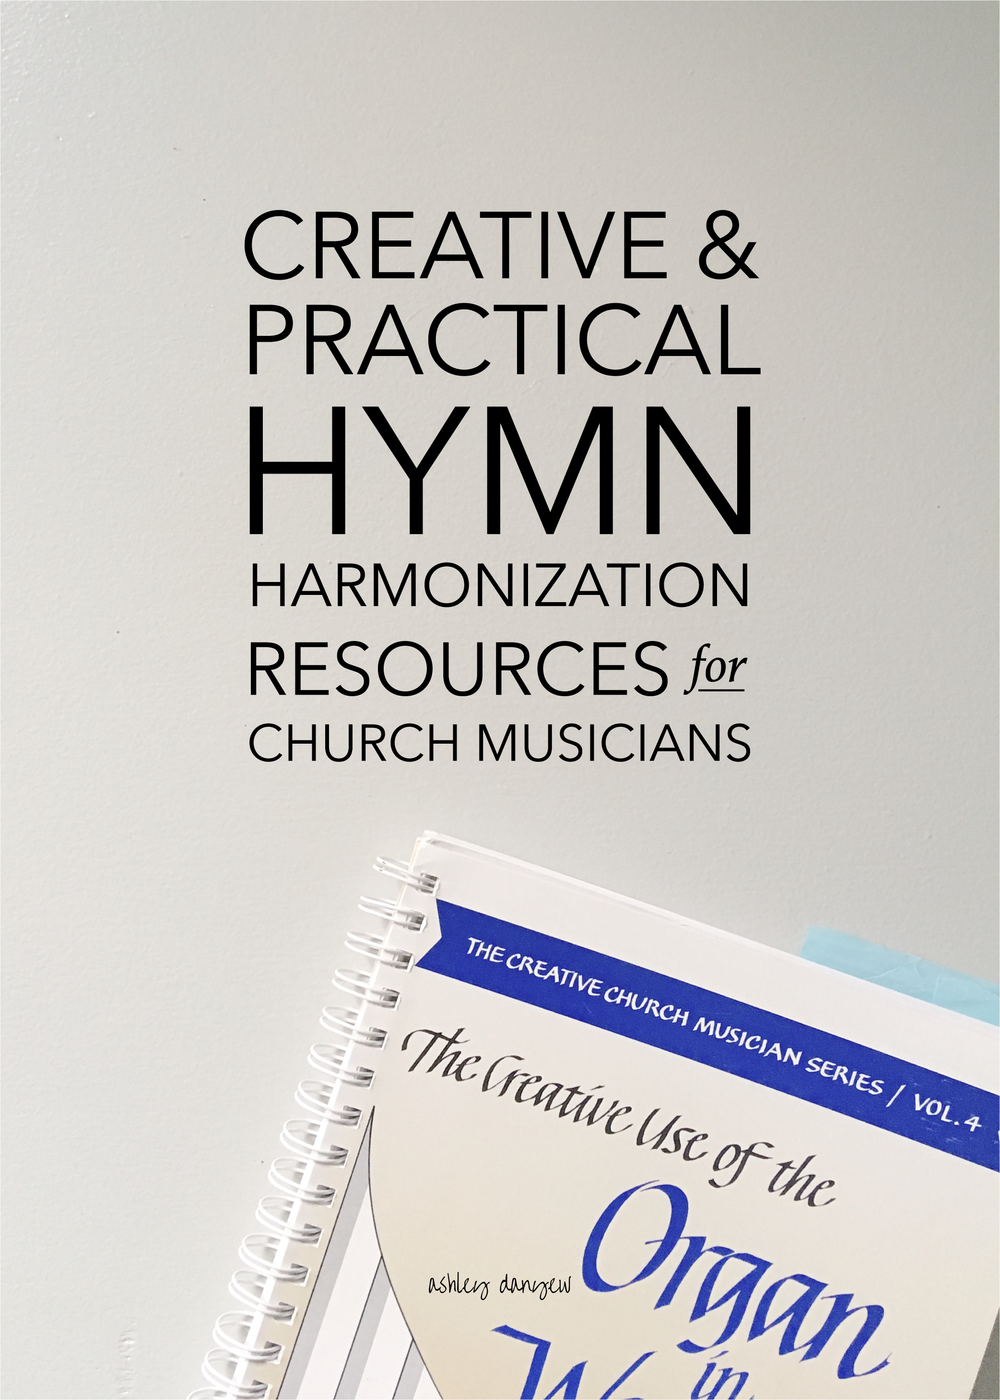 Creative and Practical Hymn Harmonization Resources for Church Musicians